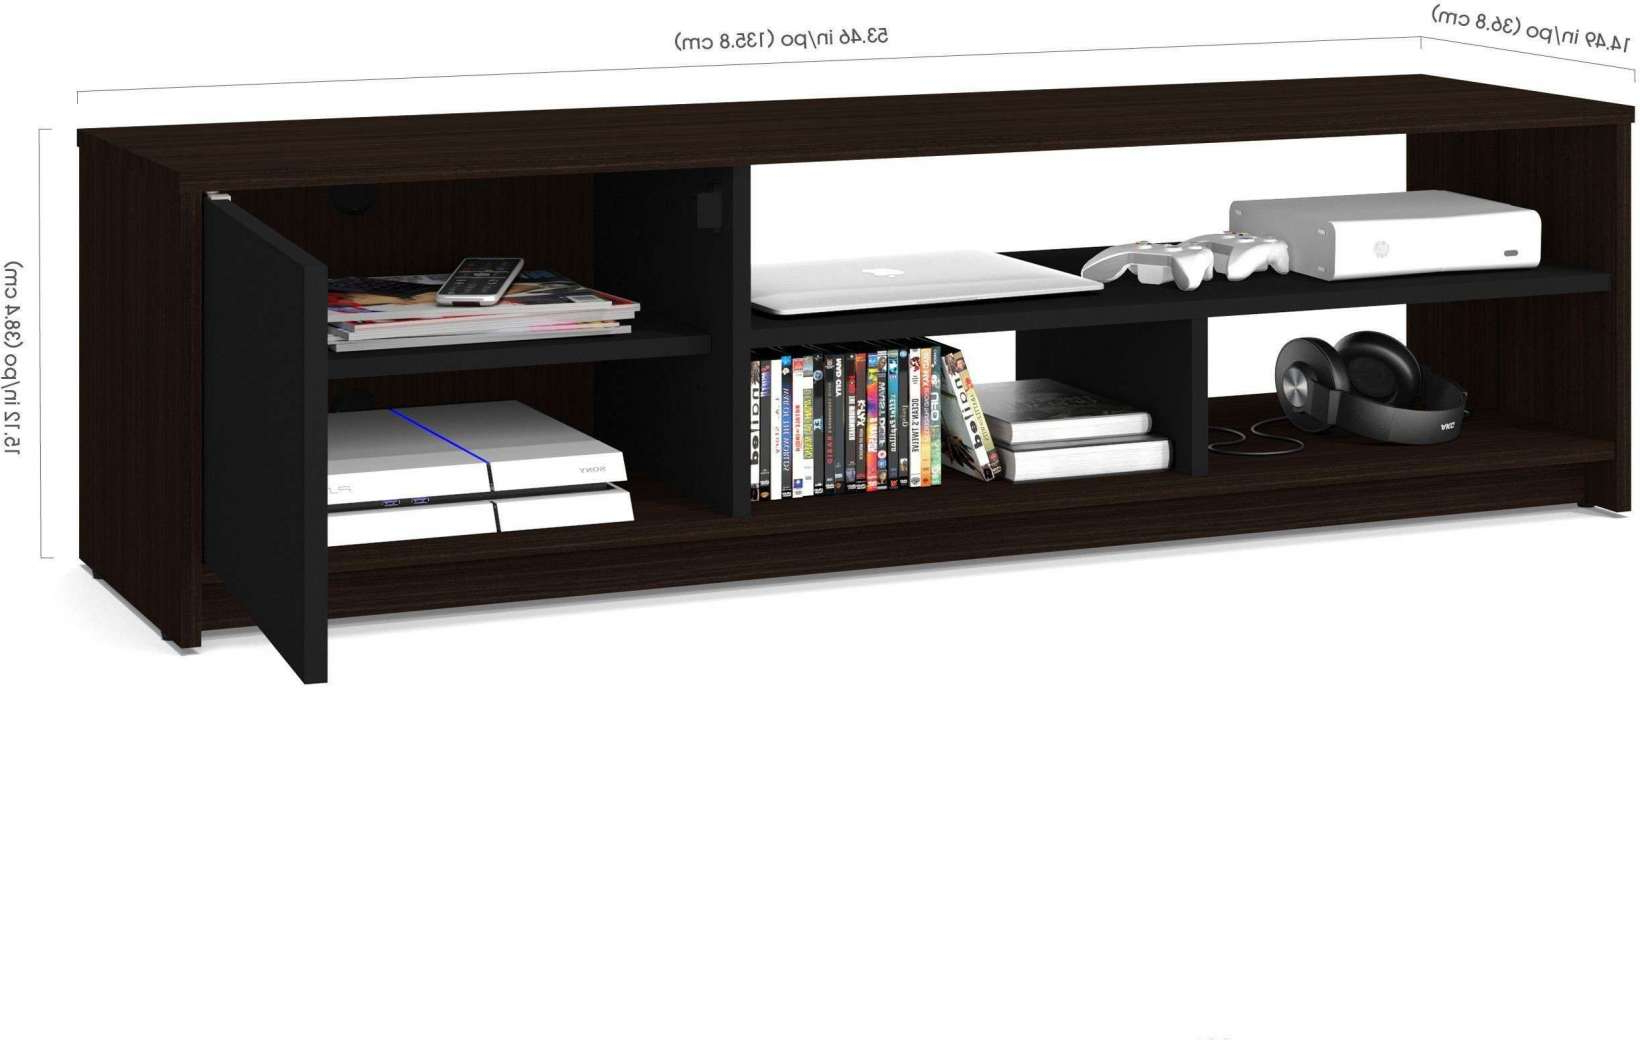 Tv Stand Coffee Table Sets With Regard To Most Recent Creative Tv Stands Plus Fresh 10 Tv Stand Coffee Table End Table Set (View 20 of 20)